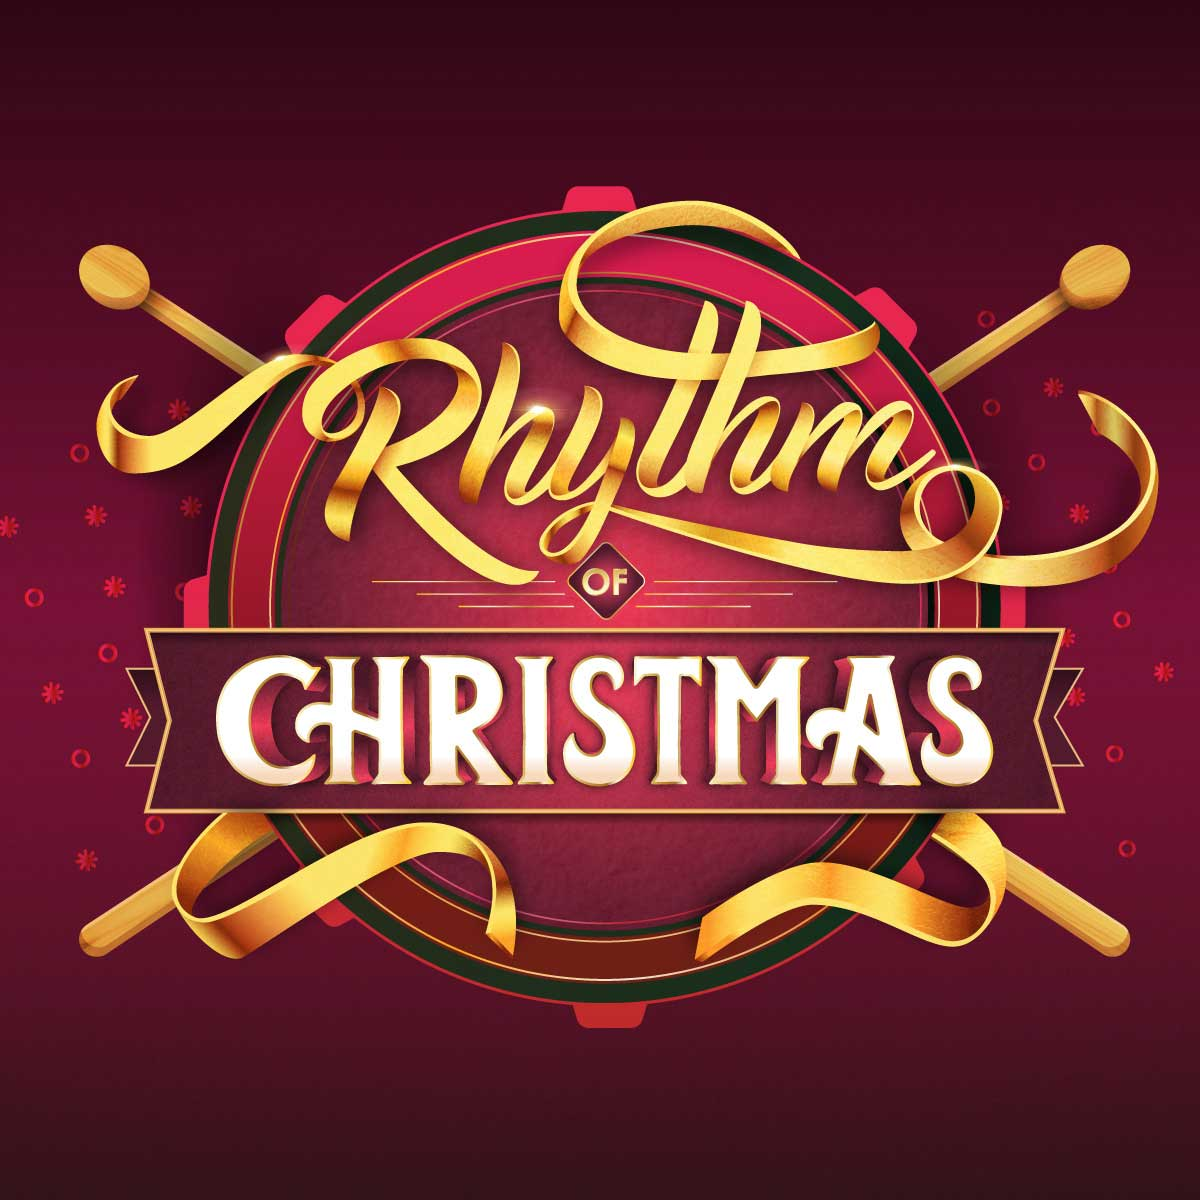 Rhythm of Christmas